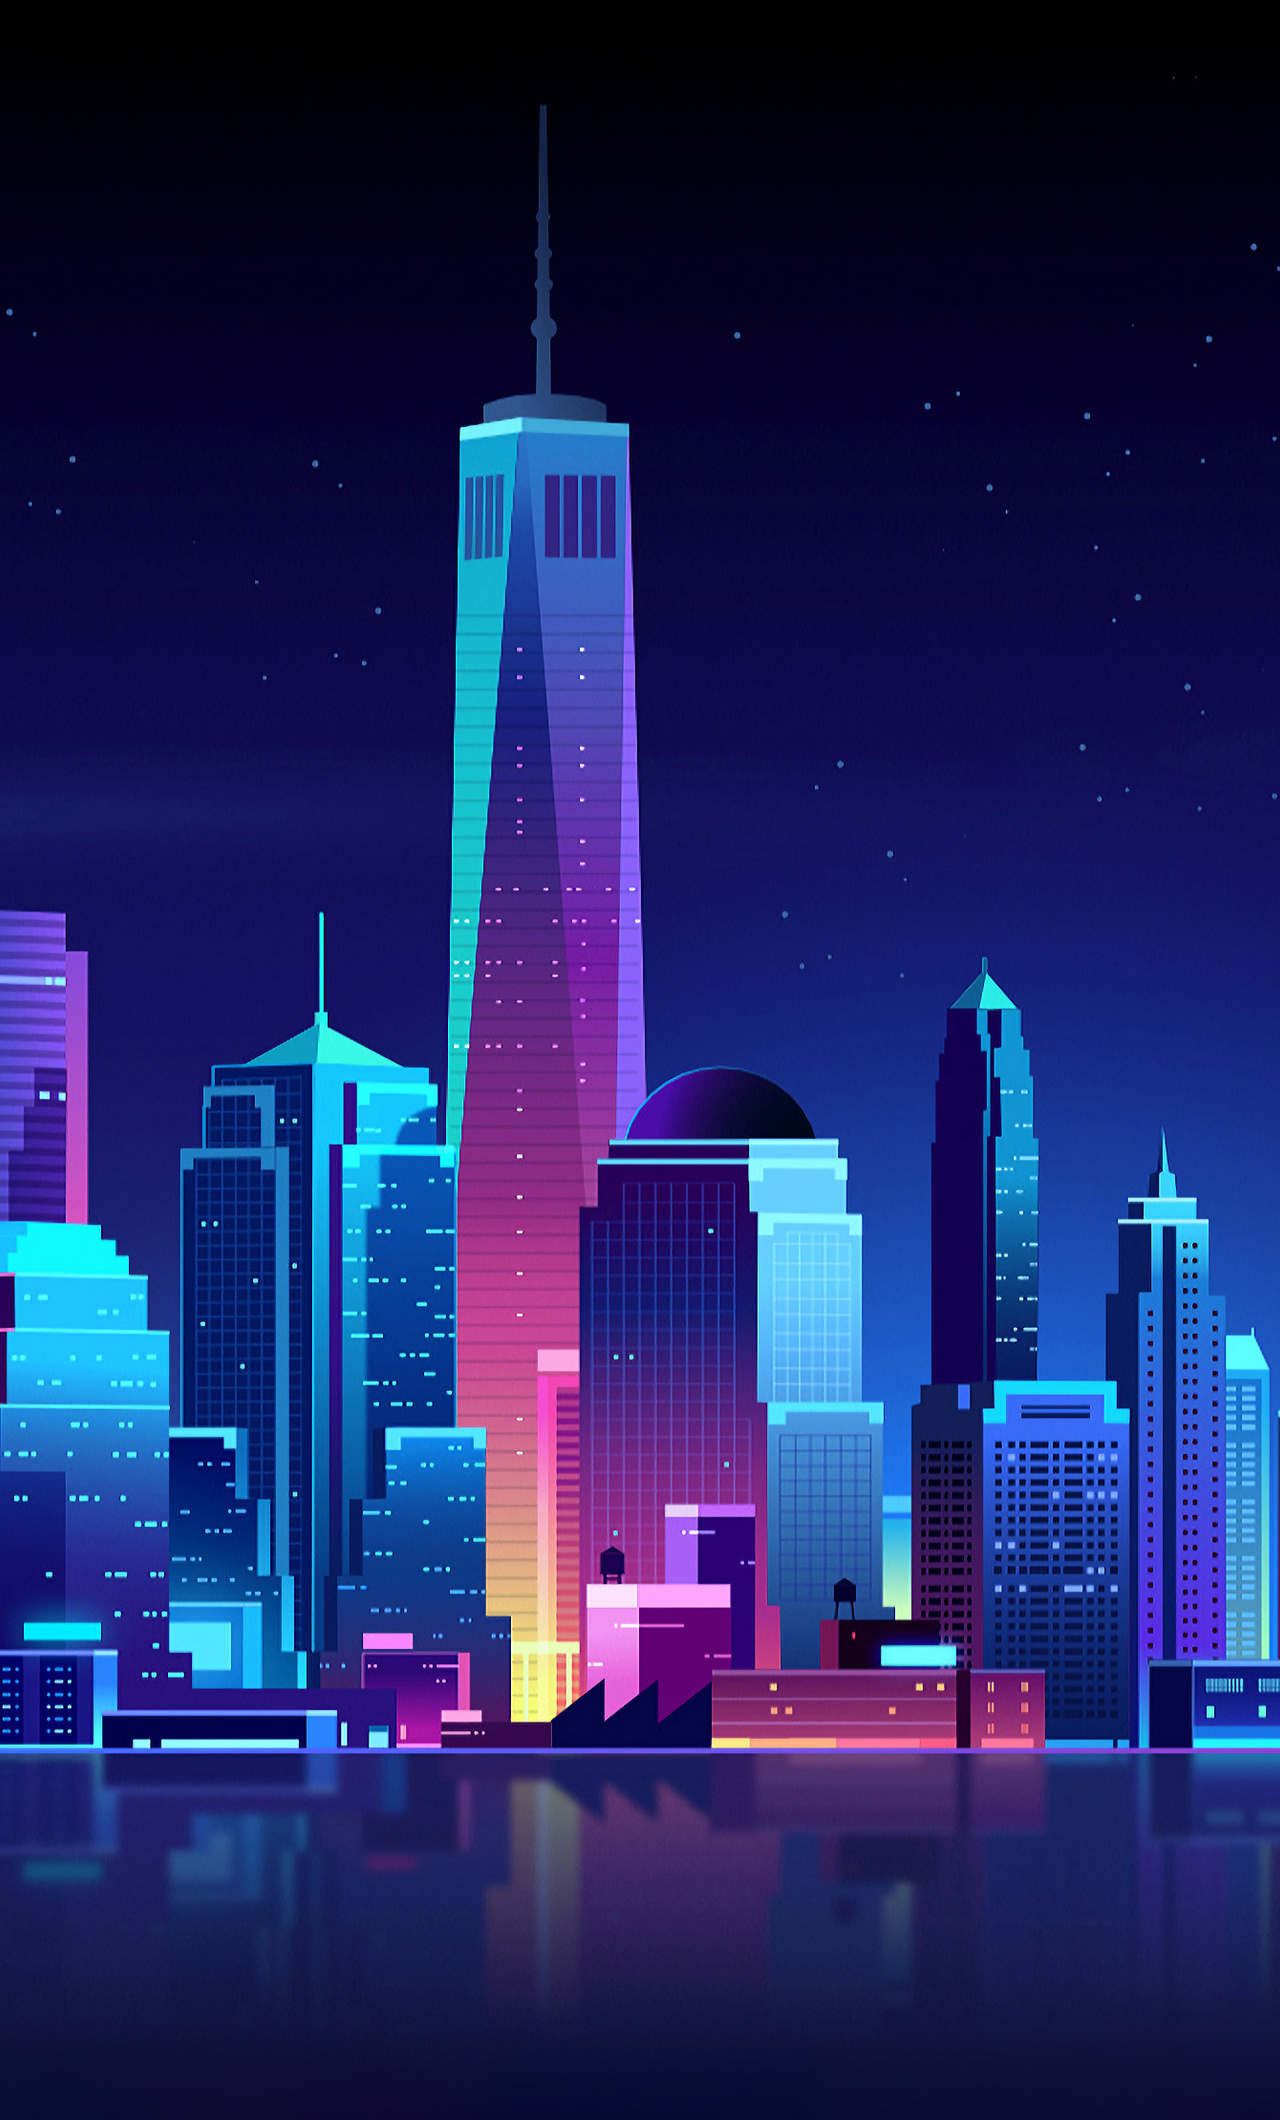 240x320 Animated Mobile Wallpapers Iphone 1280x2120 New York Buildings City Night Minimalism Iphone